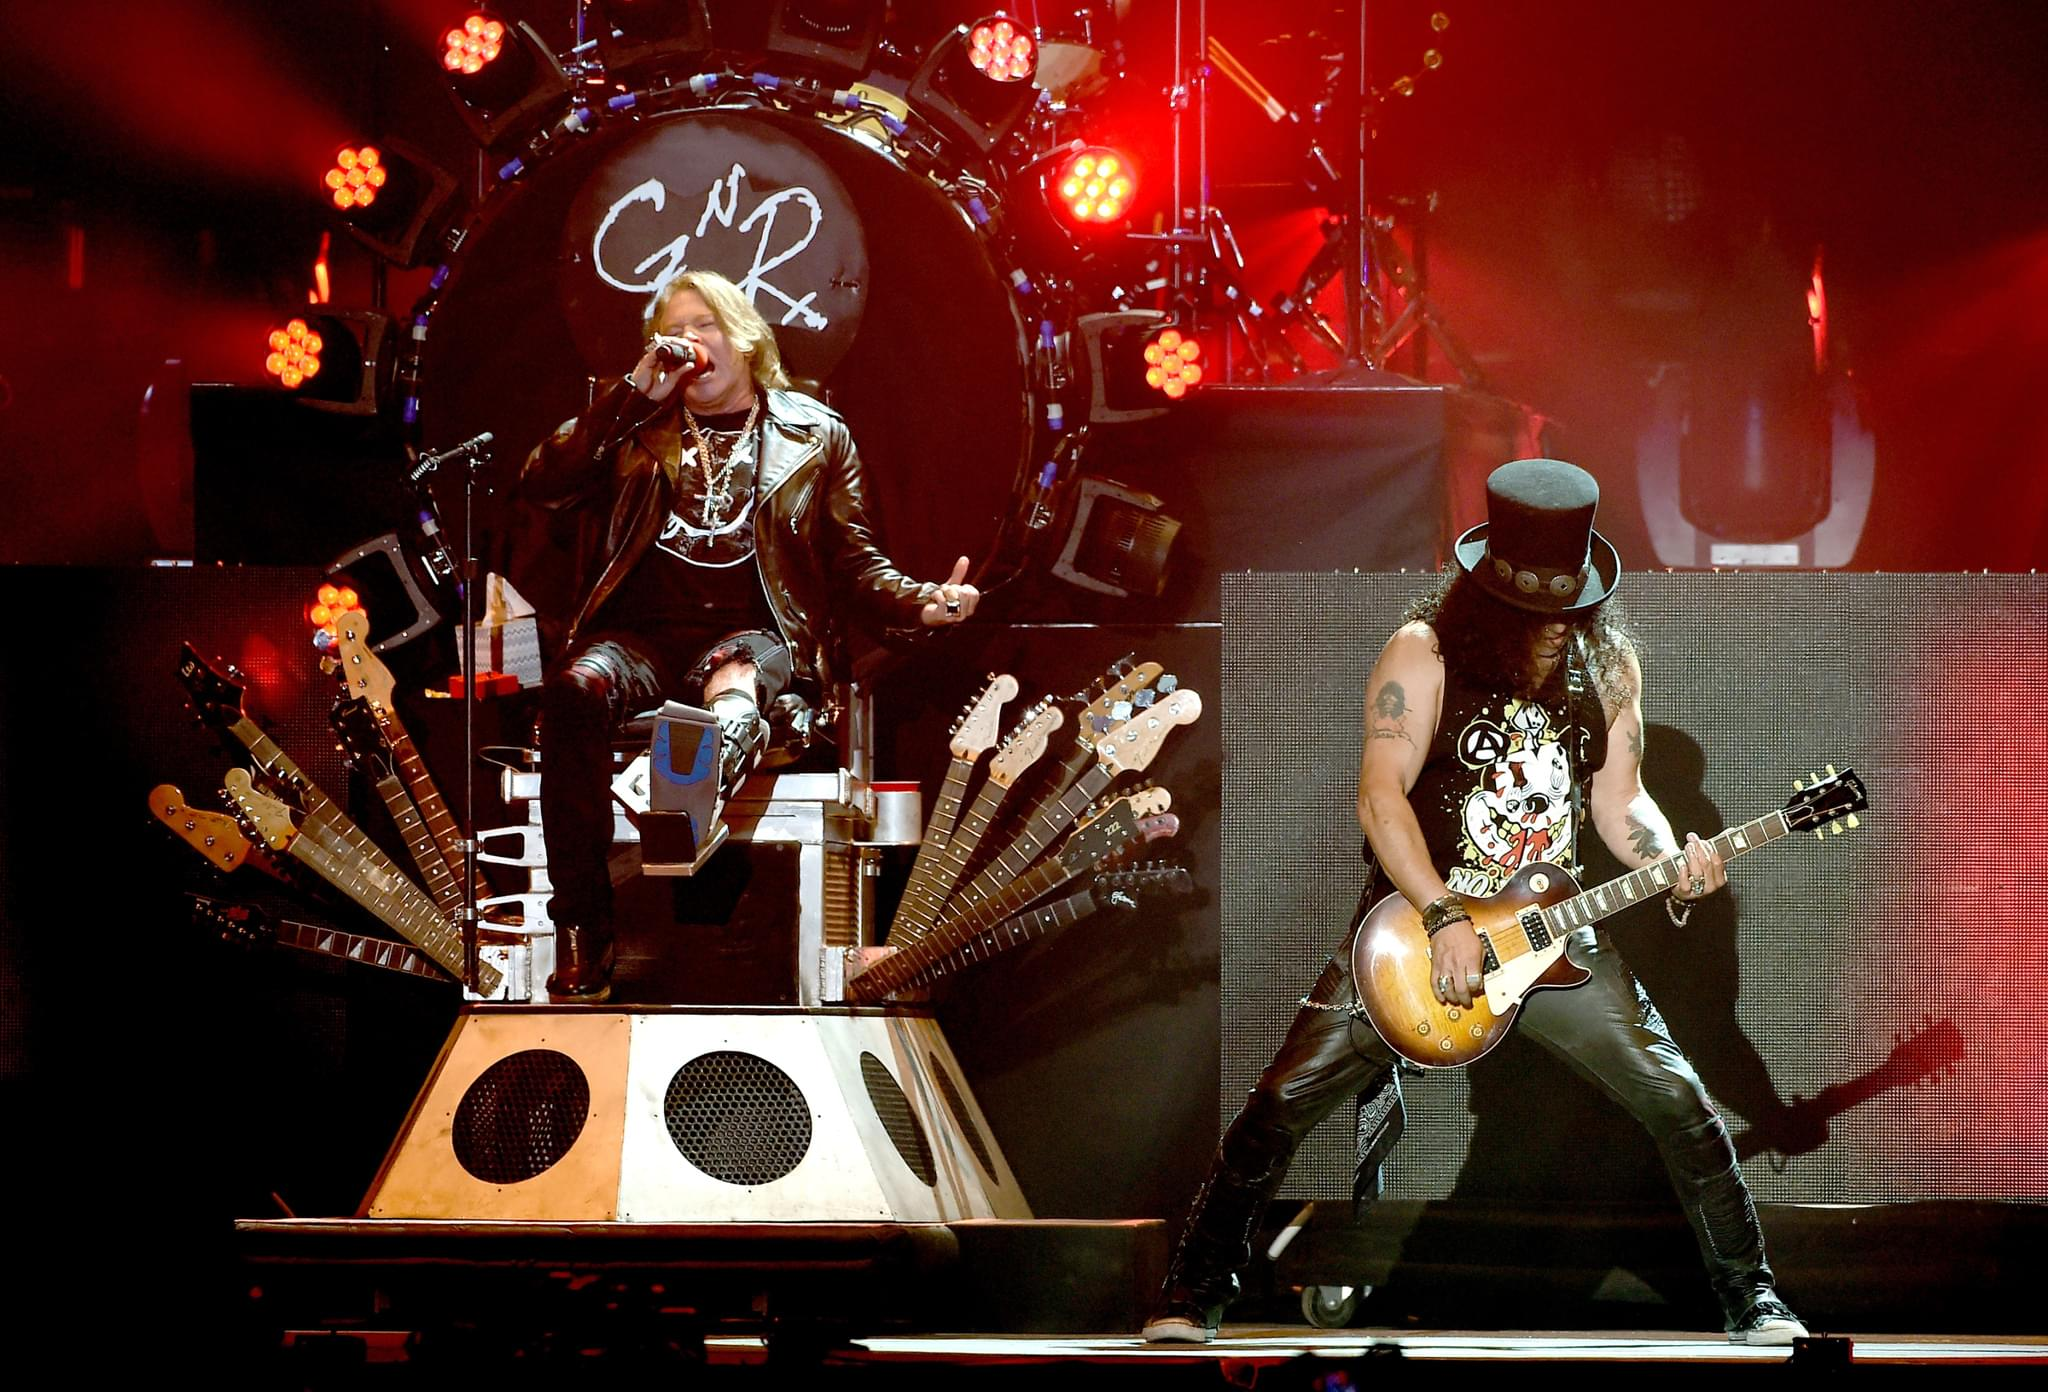 FOO FIGHTERS AND GNR SHARE THE STAGE